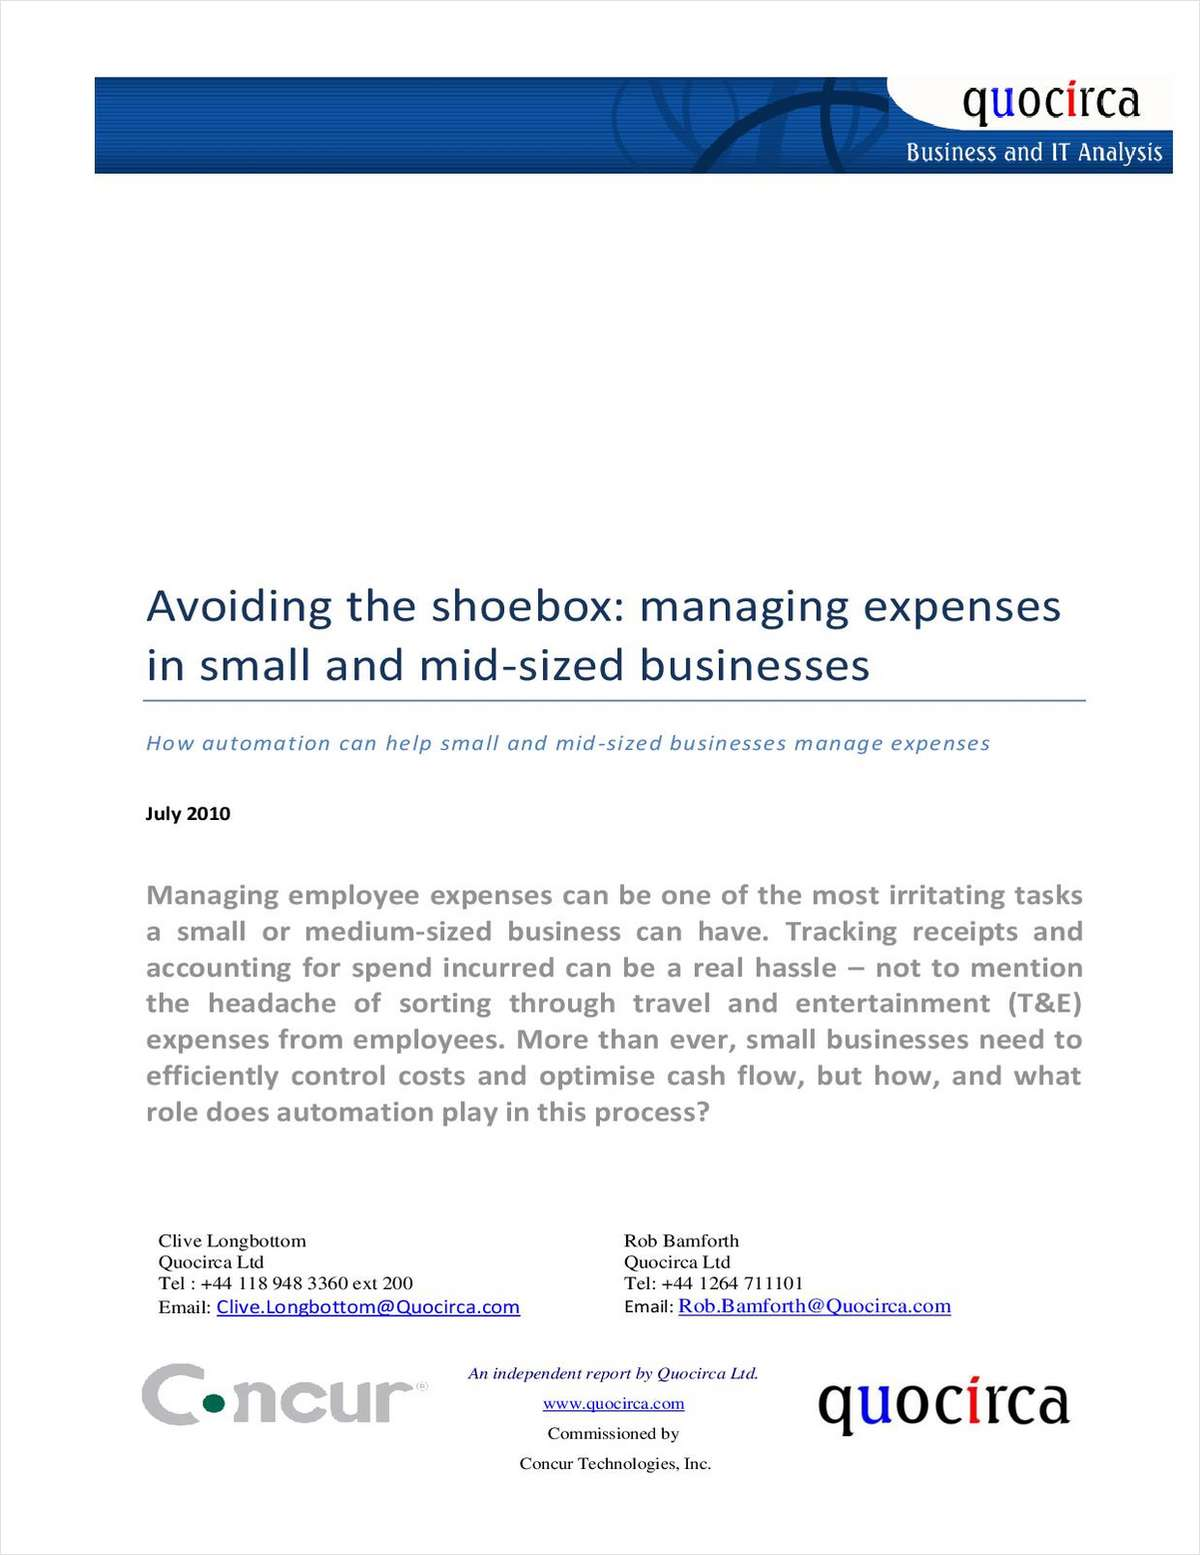 Avoiding the Shoebox: Managing Expenses in Small and Mid-Sized Businesses